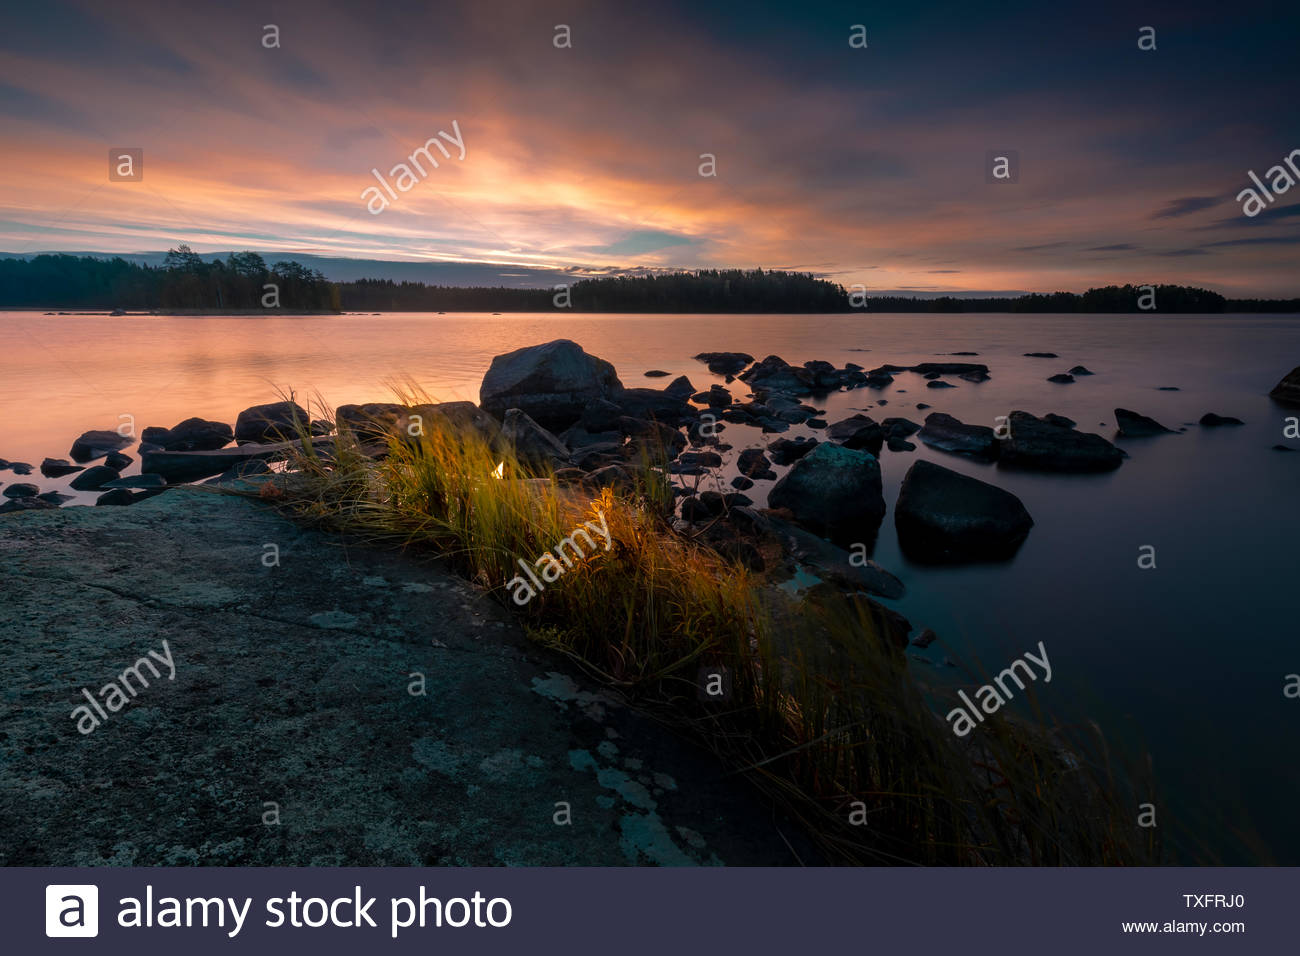 Sunset at the lake in finland - Stock Image